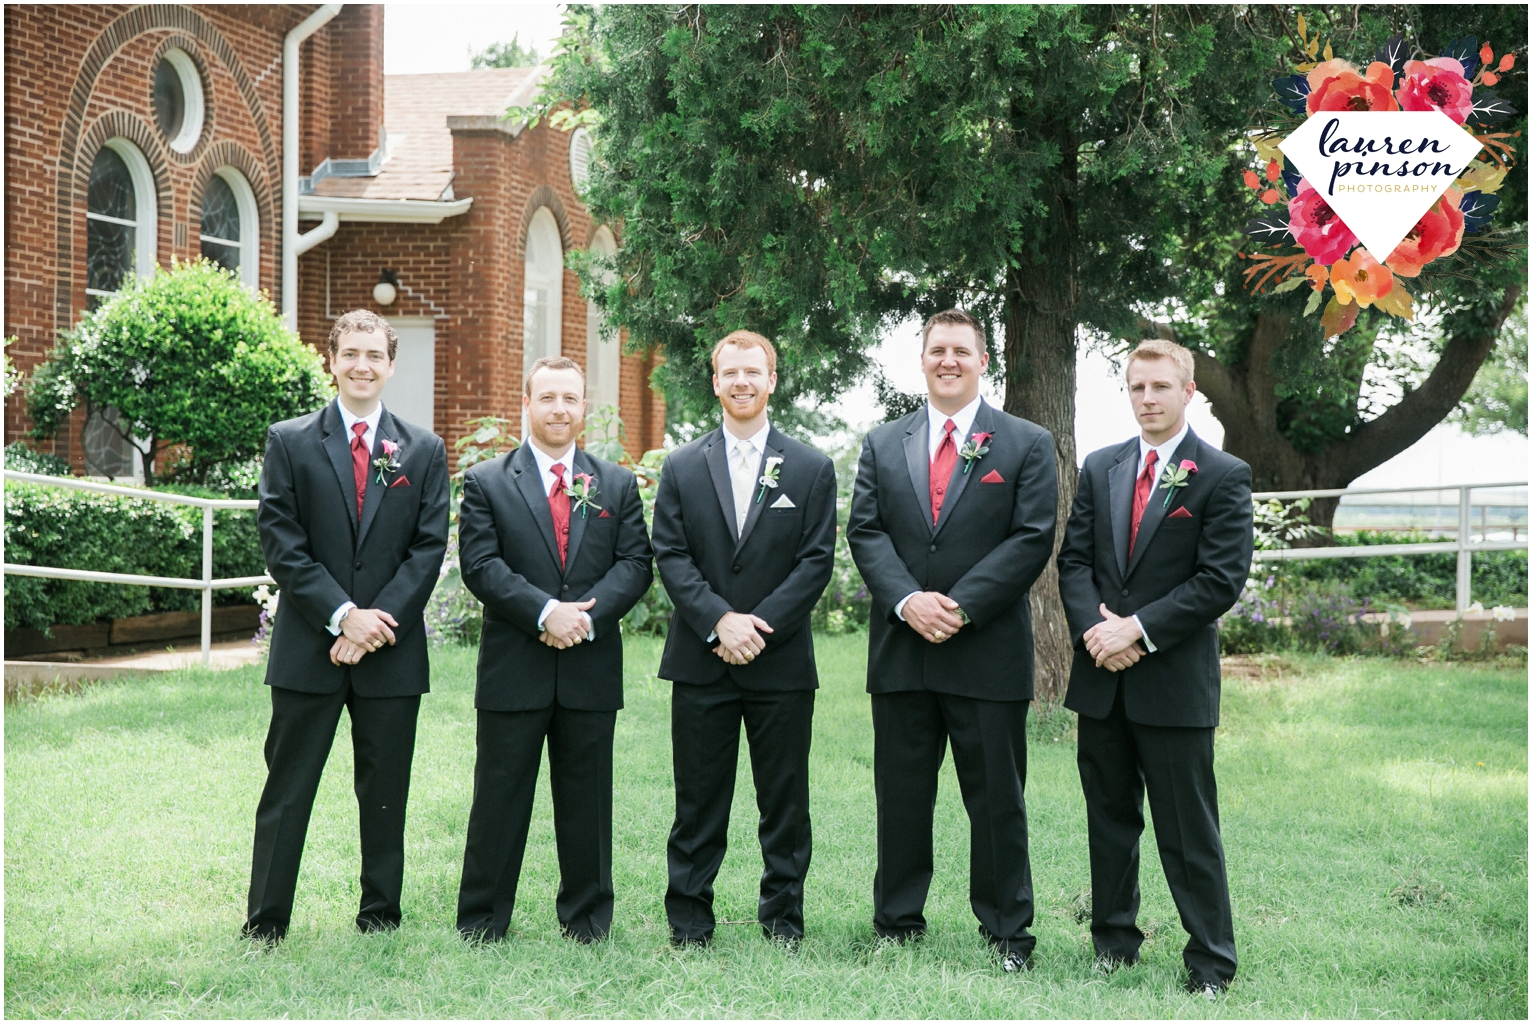 wichita-falls-wedding-photographer-OUR-Lady-queen-of-peace-catholic-wedding-the-forum-photography_0922.jpg